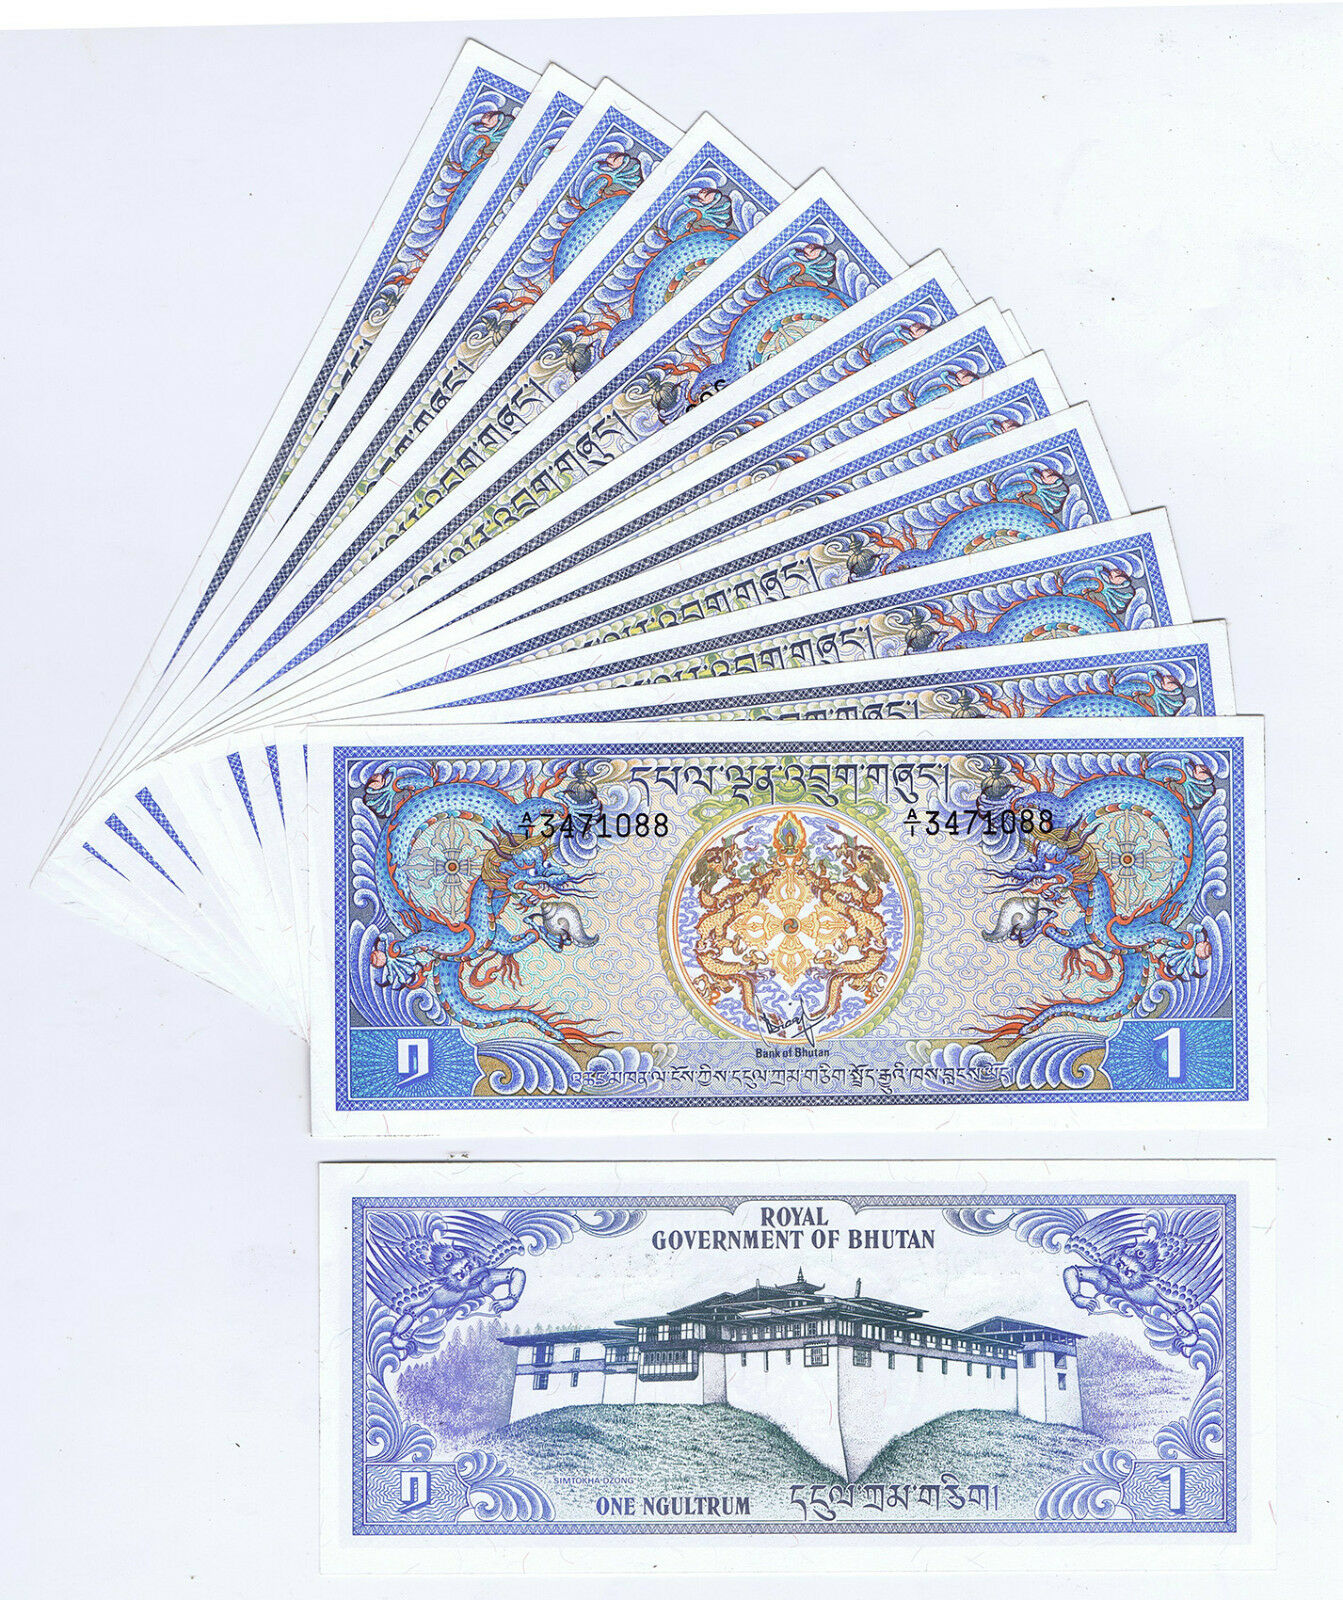 BHUTAN 1 NG CONSECUTIVE UNC PACK of 100 with DRAGONS   BUDDHIST PICK # 5 of 1981